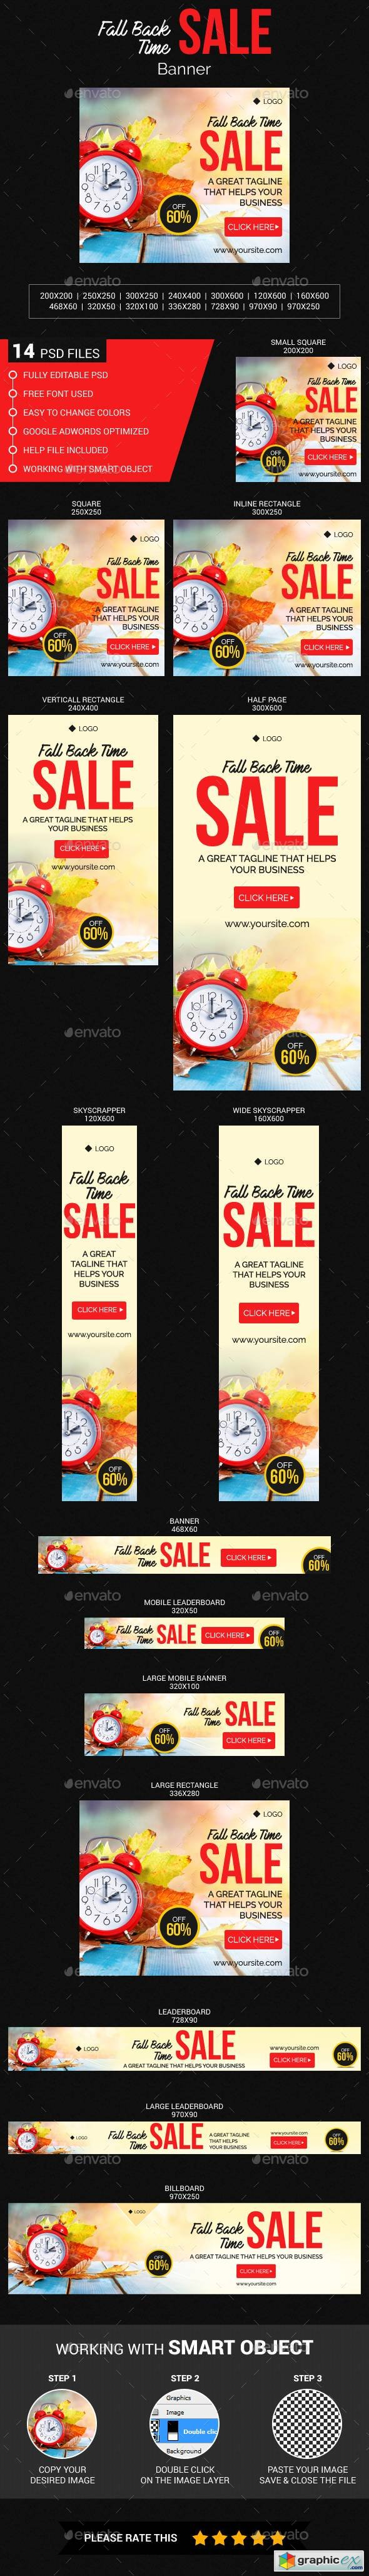 Fall Back Time Sale